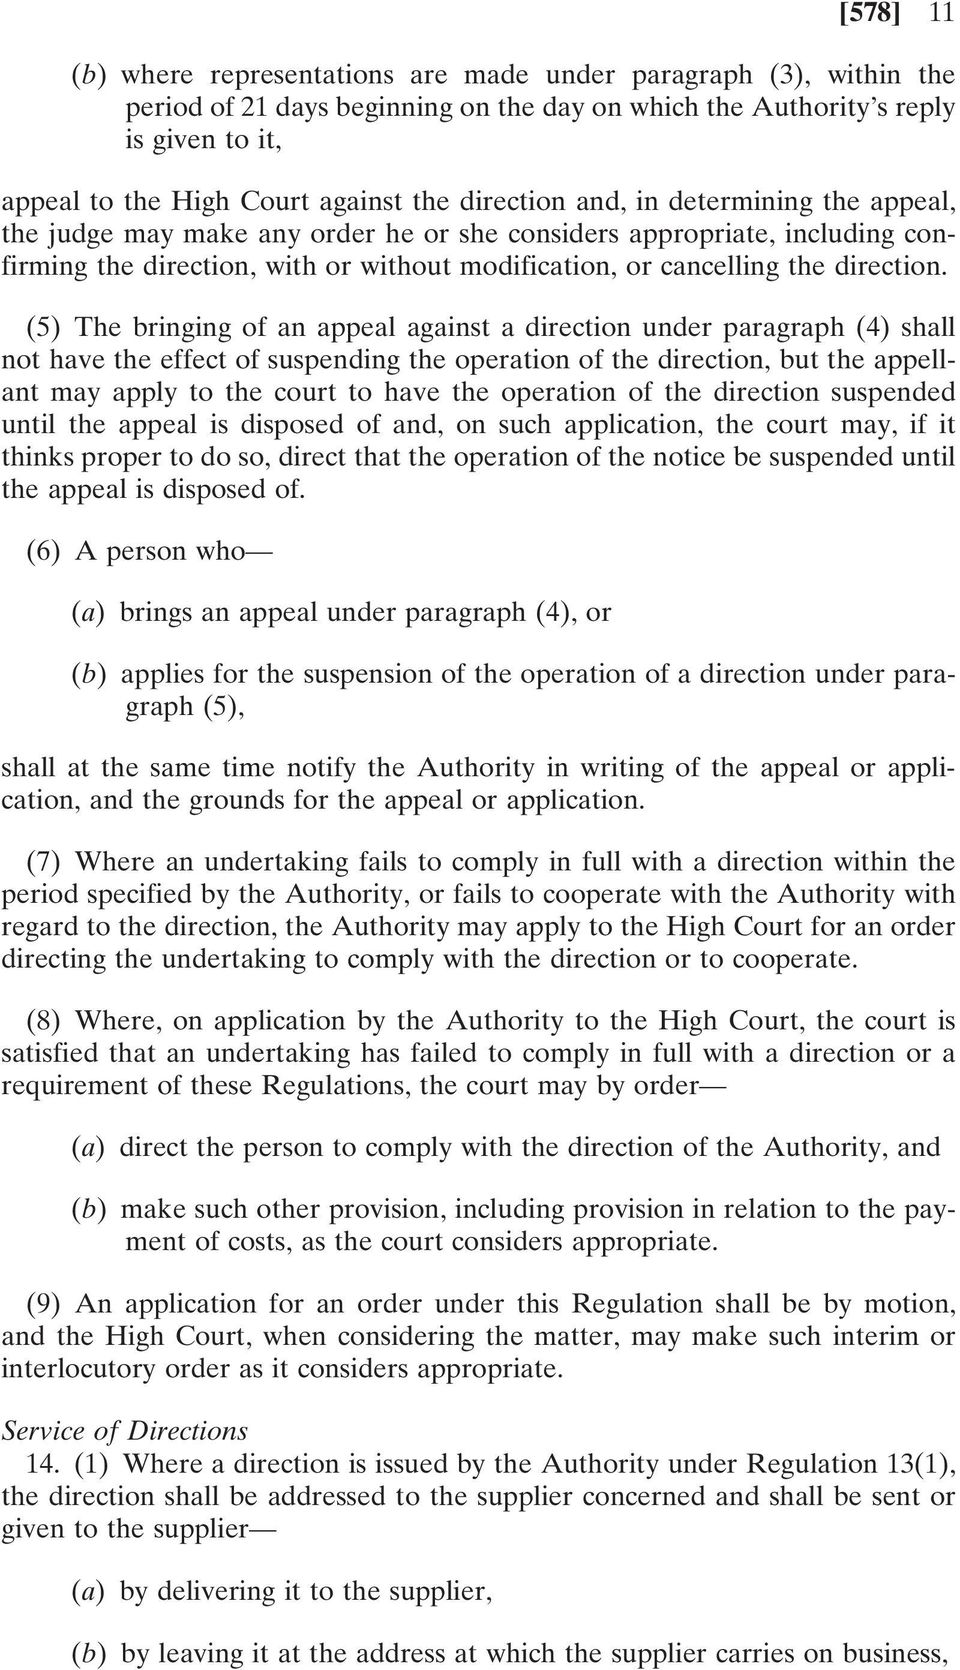 (5) The bringing of an appeal against a direction under paragraph (4) shall not have the effect of suspending the operation of the direction, but the appellant may apply to the court to have the